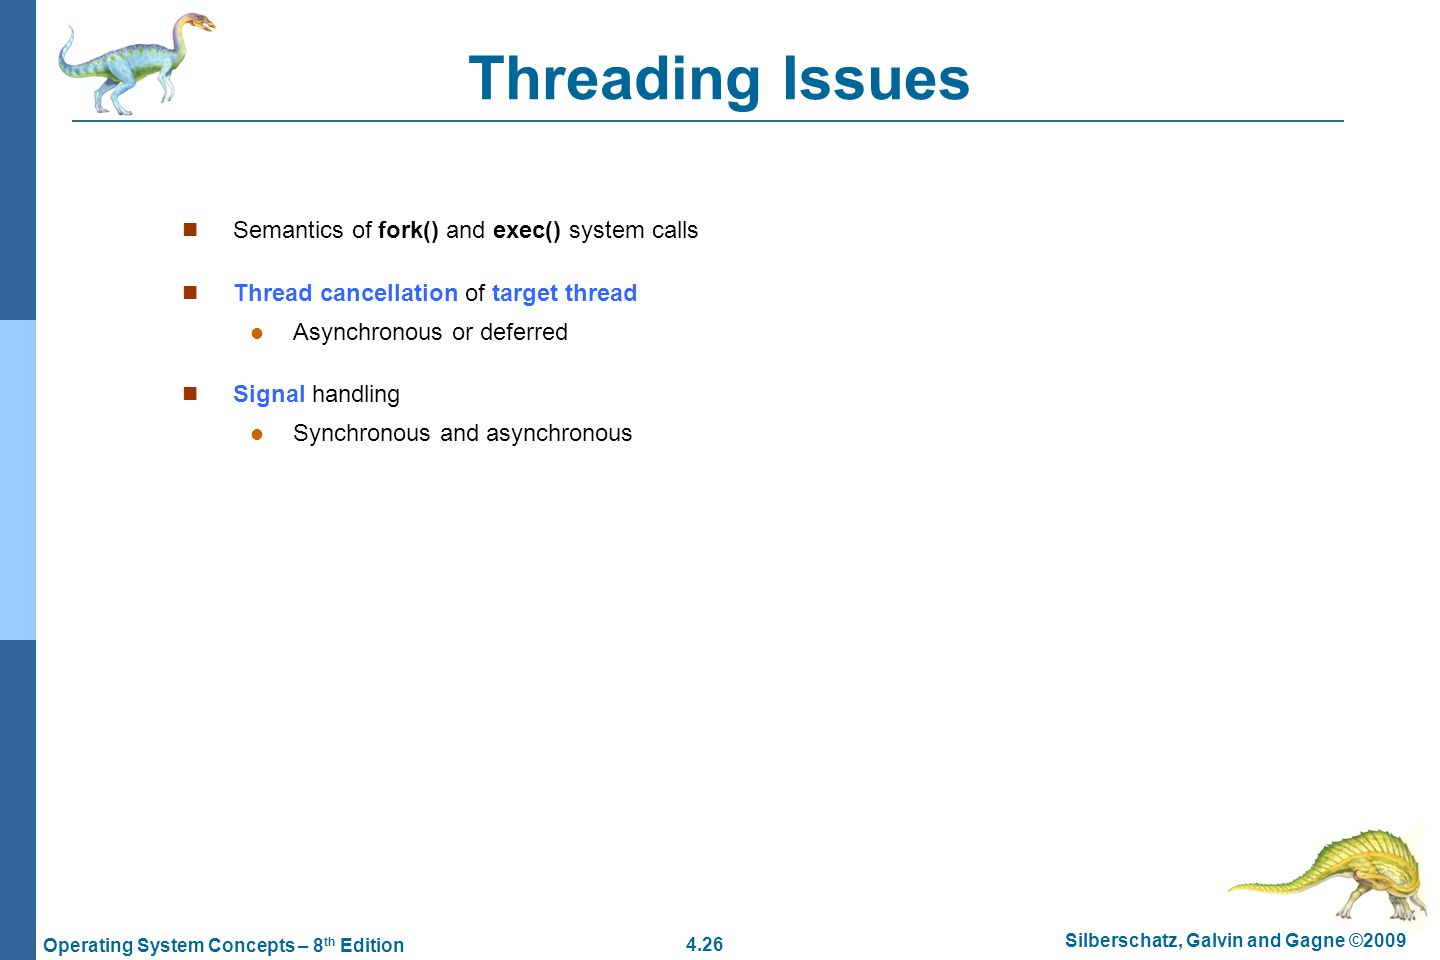 4.26 Silberschatz, Galvin and Gagne ©2009 Operating System Concepts – 8 th Edition Threading Issues Semantics of fork() and exec() system calls Thread cancellation of target thread Asynchronous or deferred Signal handling Synchronous and asynchronous